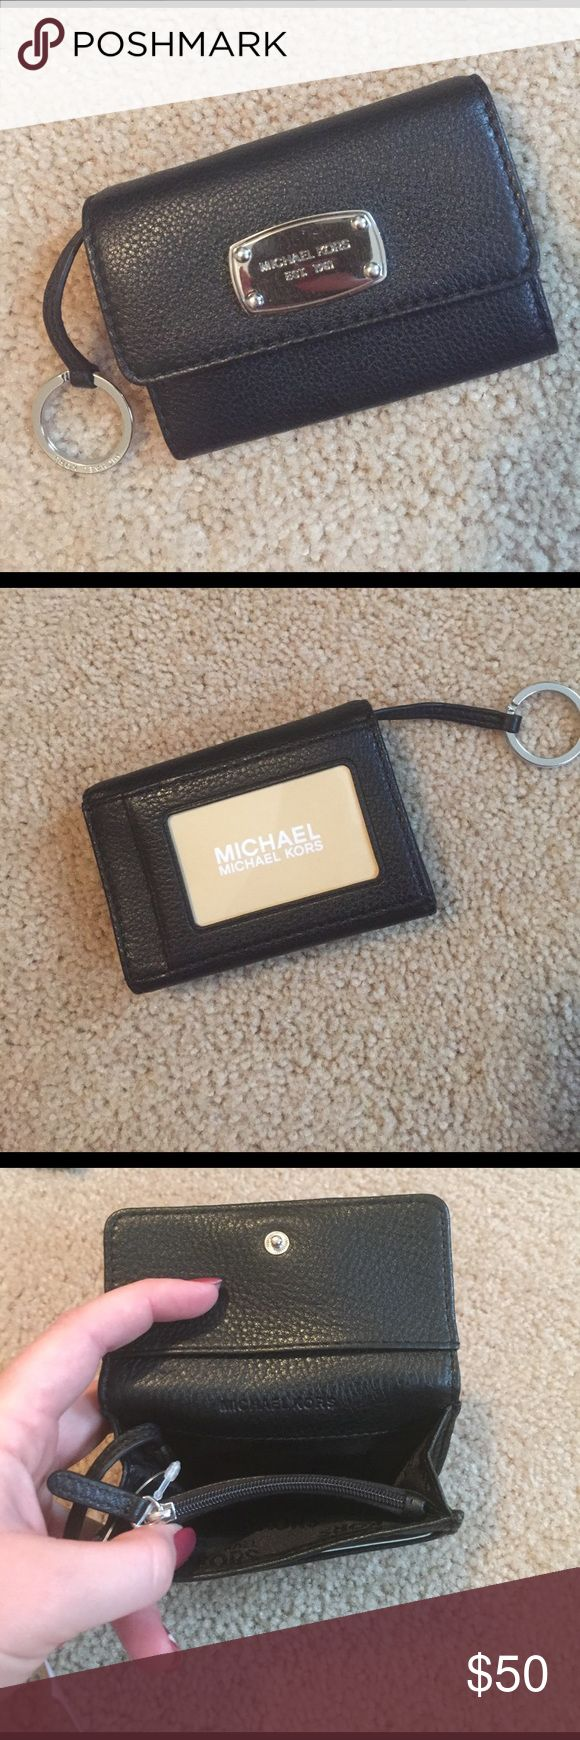 Michael kors coin purse wallet Authentic Michael kors leather flap coin purse. Black. New with tag. Michael Kors Bags Wallets